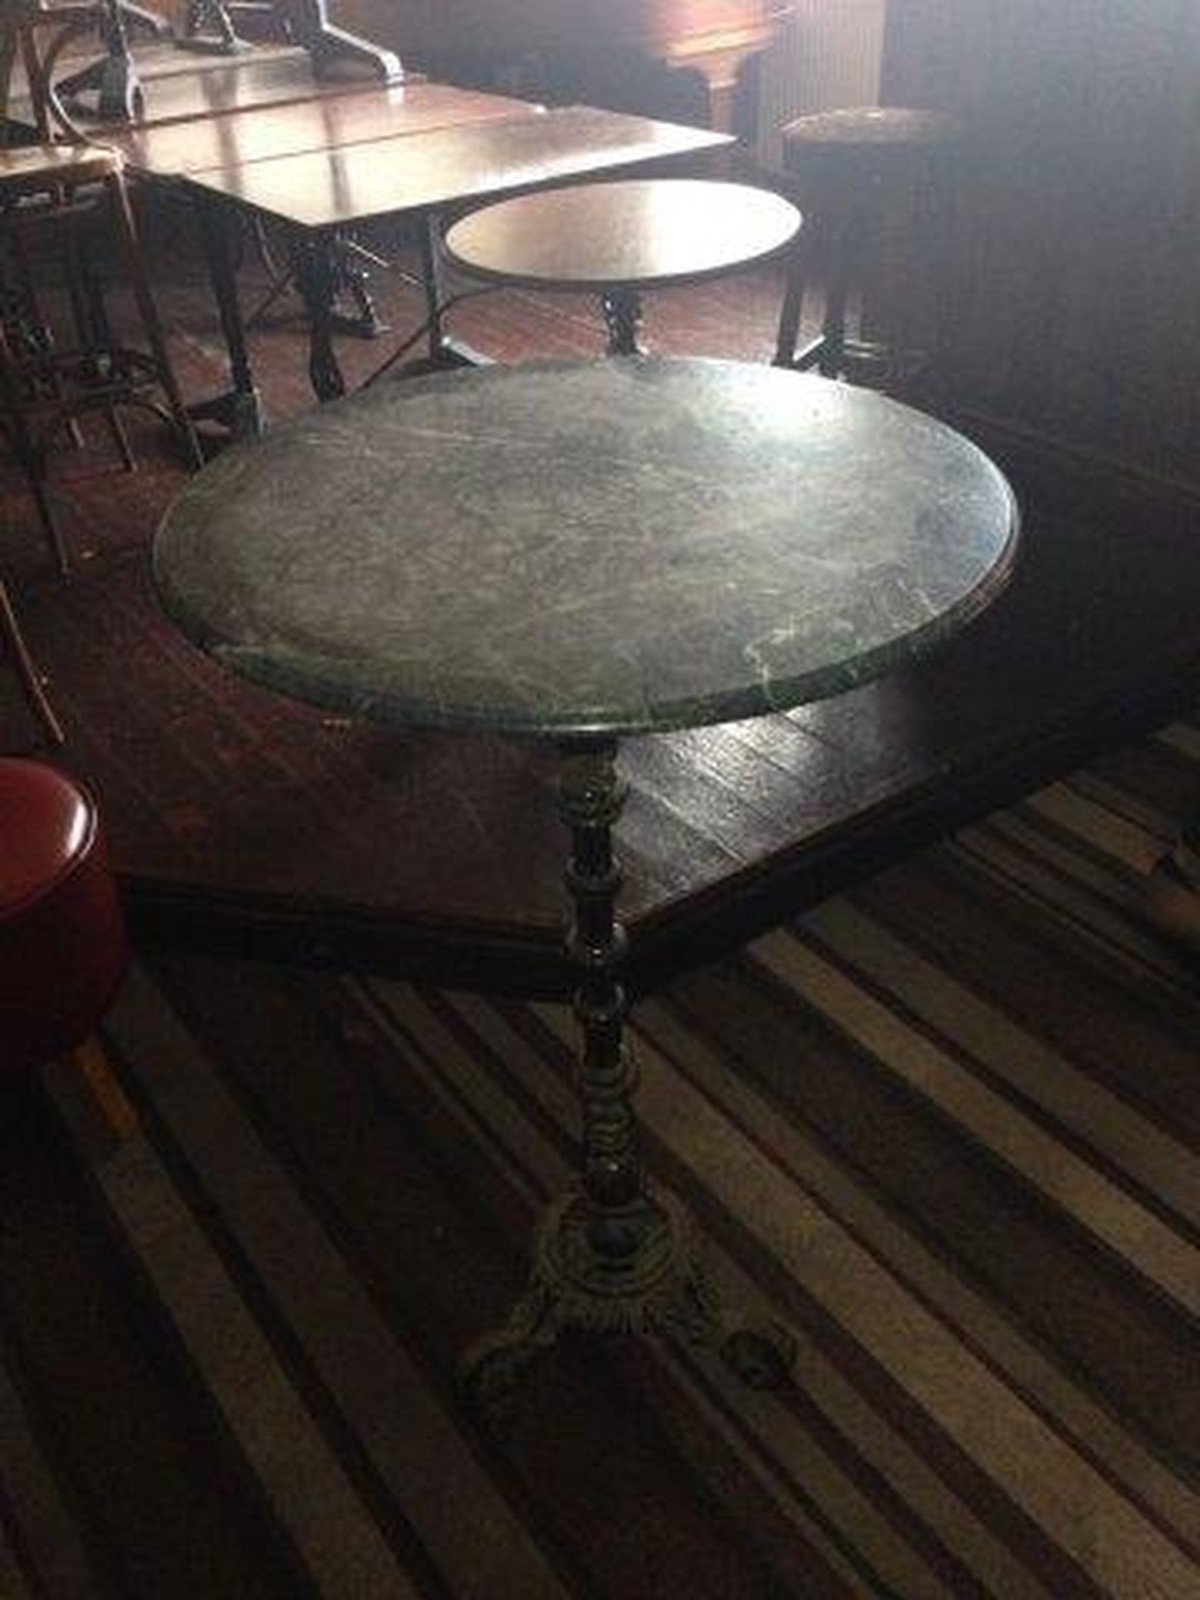 Cast iron bar table image collections table decoration ideas cast iron bar table image collections table decoration ideas watchthetrailerfo secondhand pub equipment pub tables round watchthetrailerfo